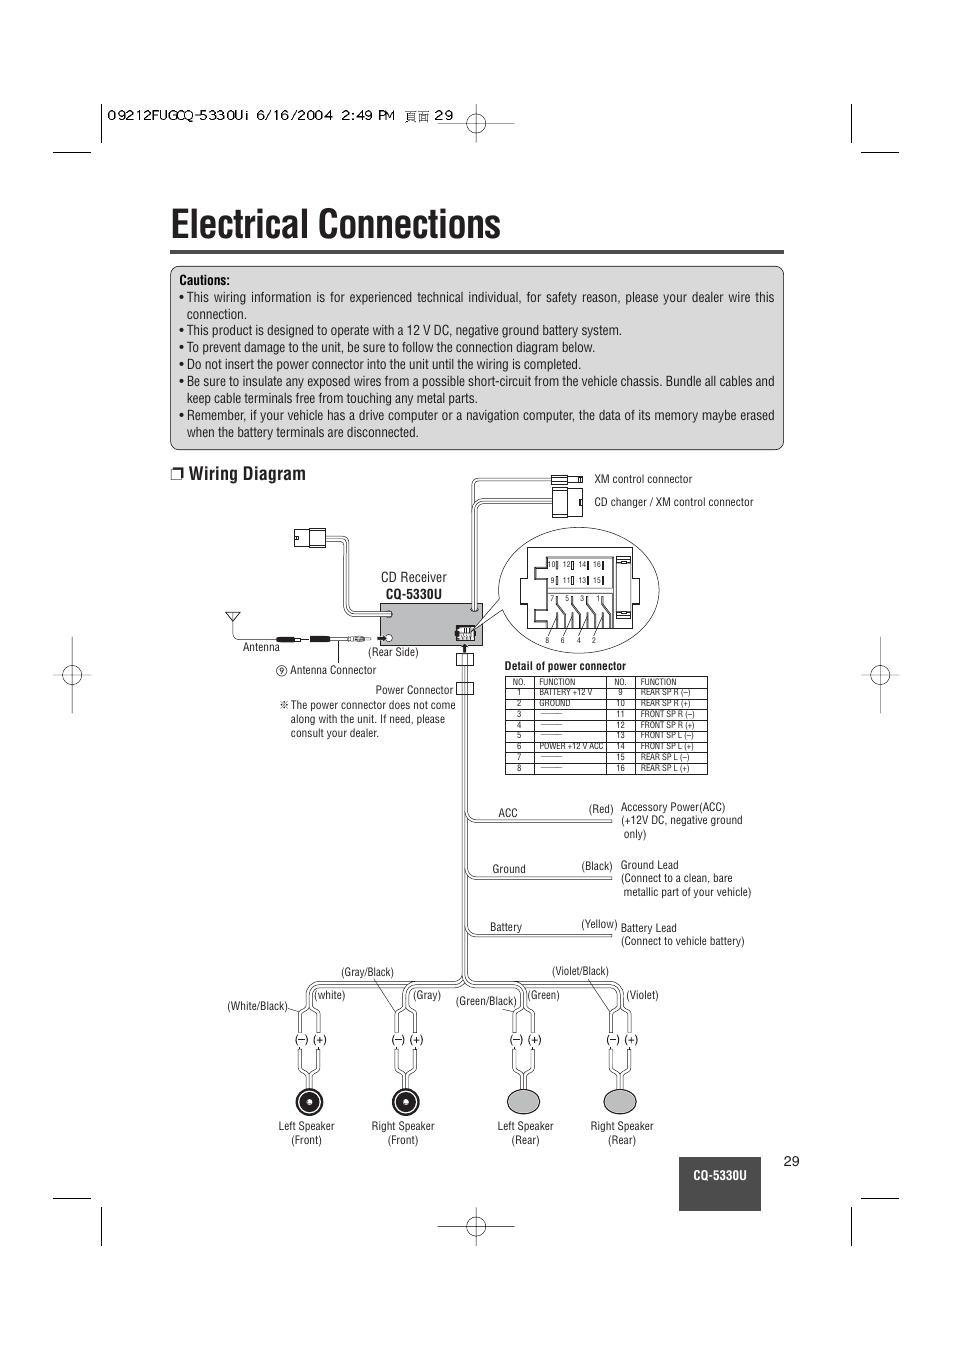 hight resolution of electrical connections wiring diagram panasonic cq 5330u user manual page 29